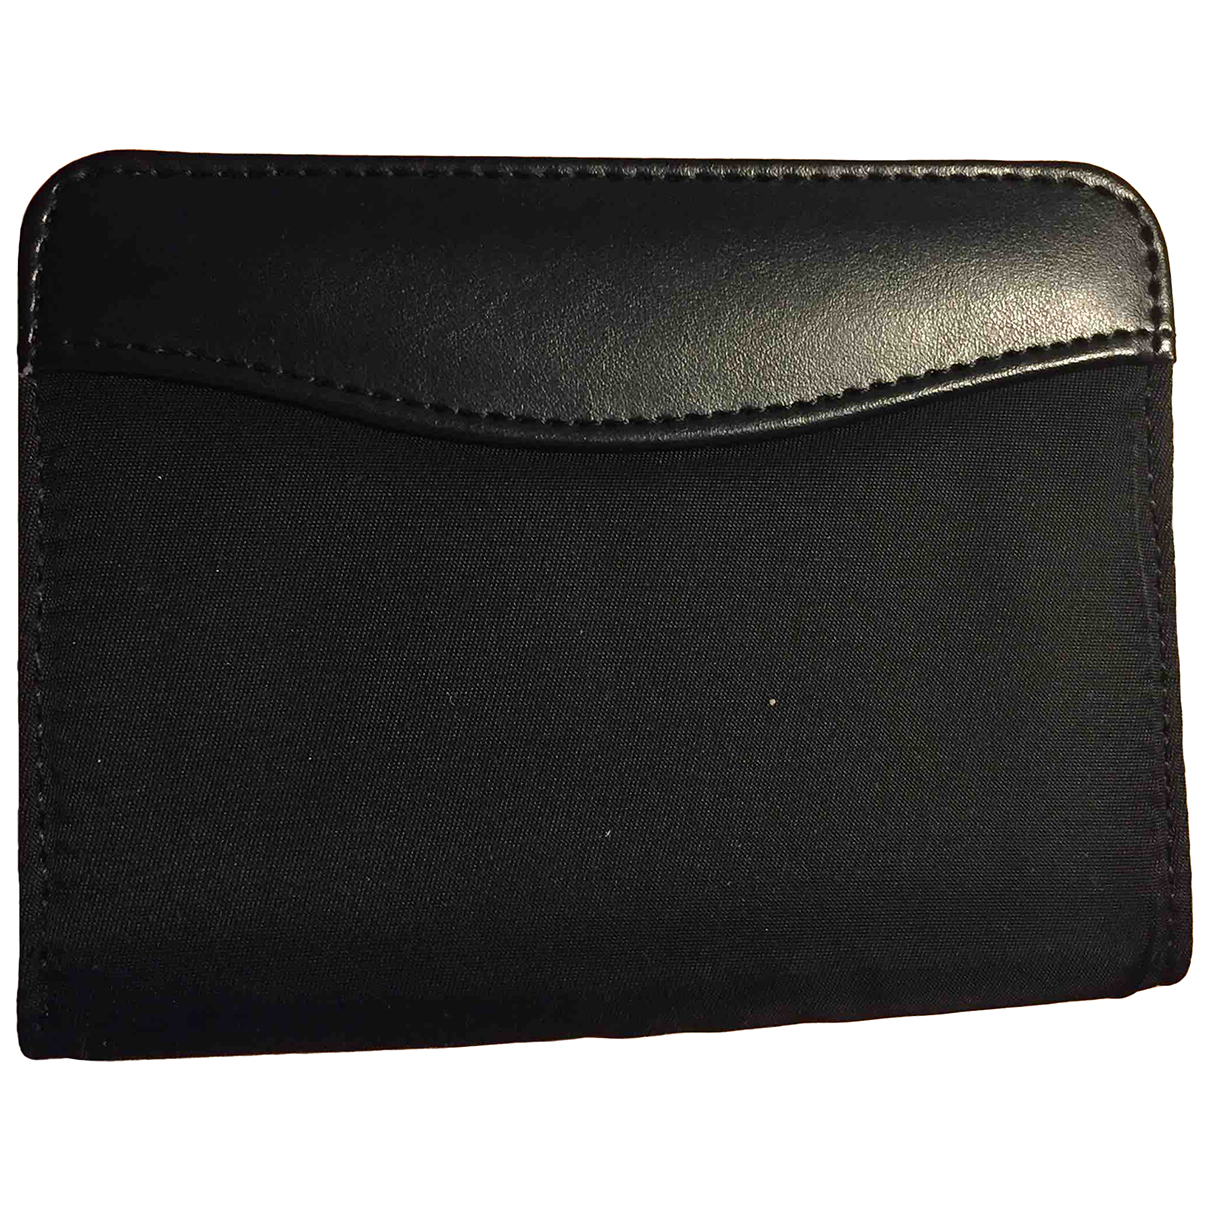 Balmain N Black Purses, wallet & cases for Women N